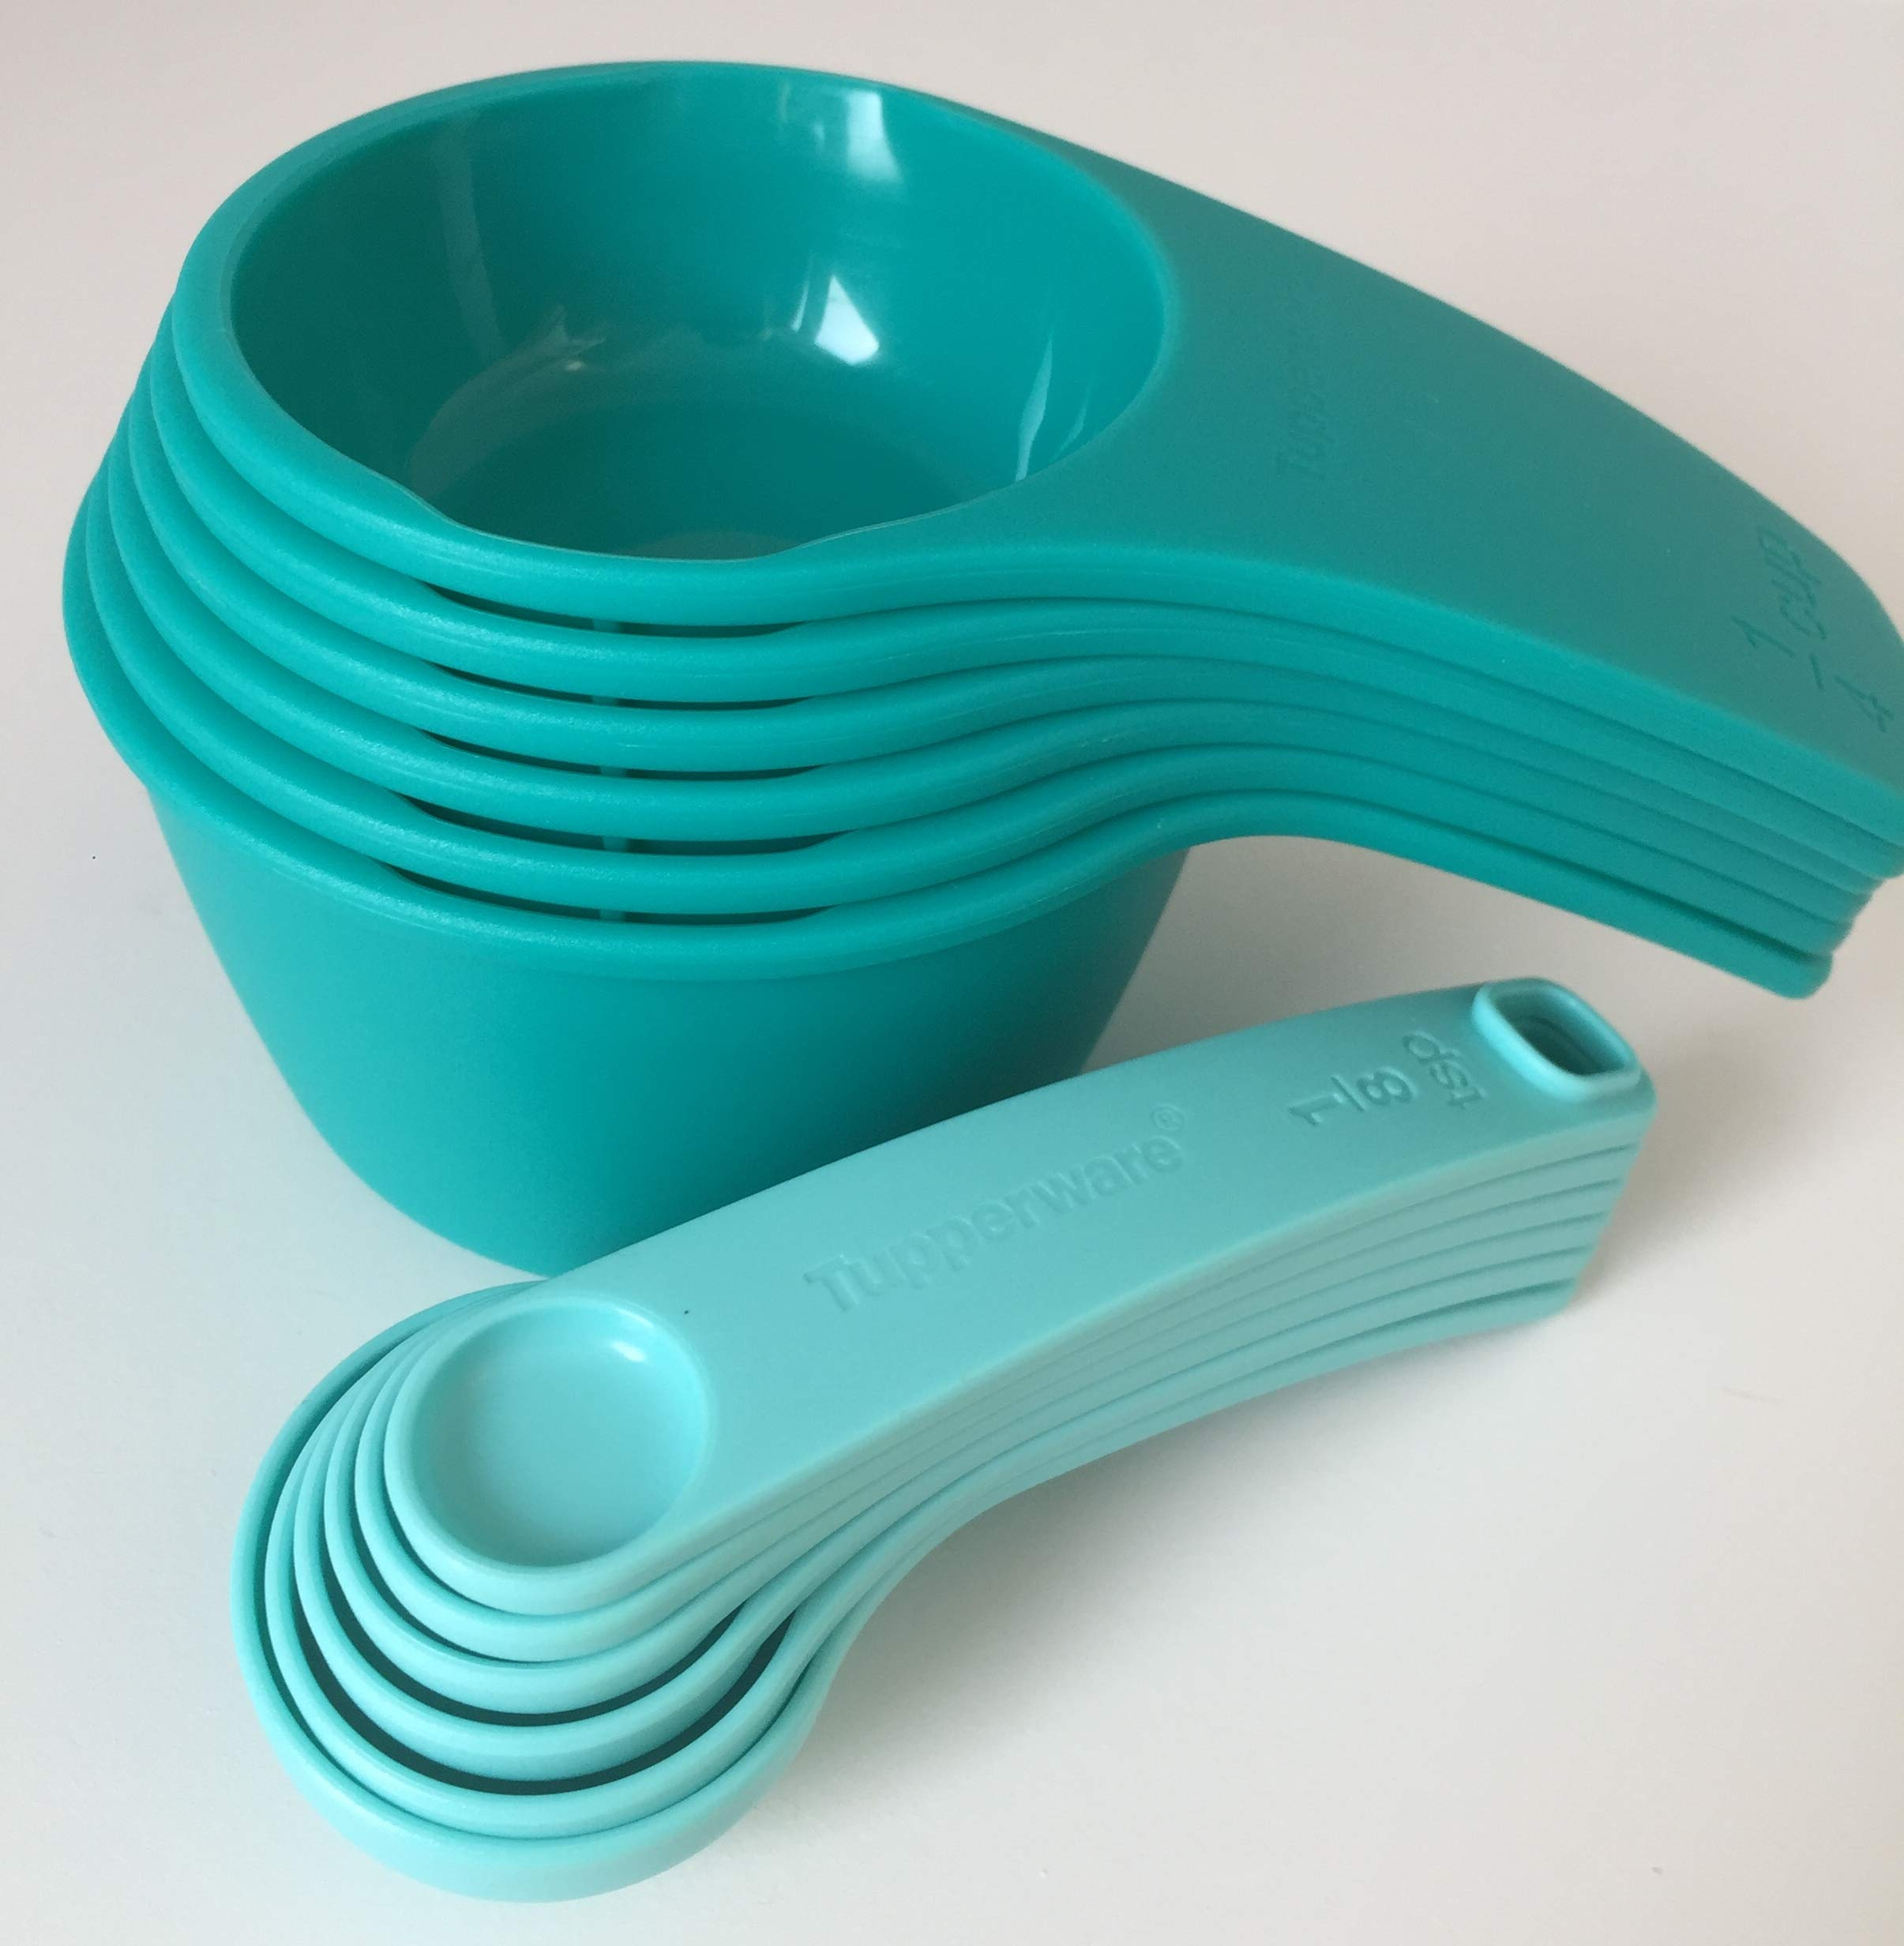 Tupperware Measuring Cup & Spoon Set Newest Design Teal by Tupperware